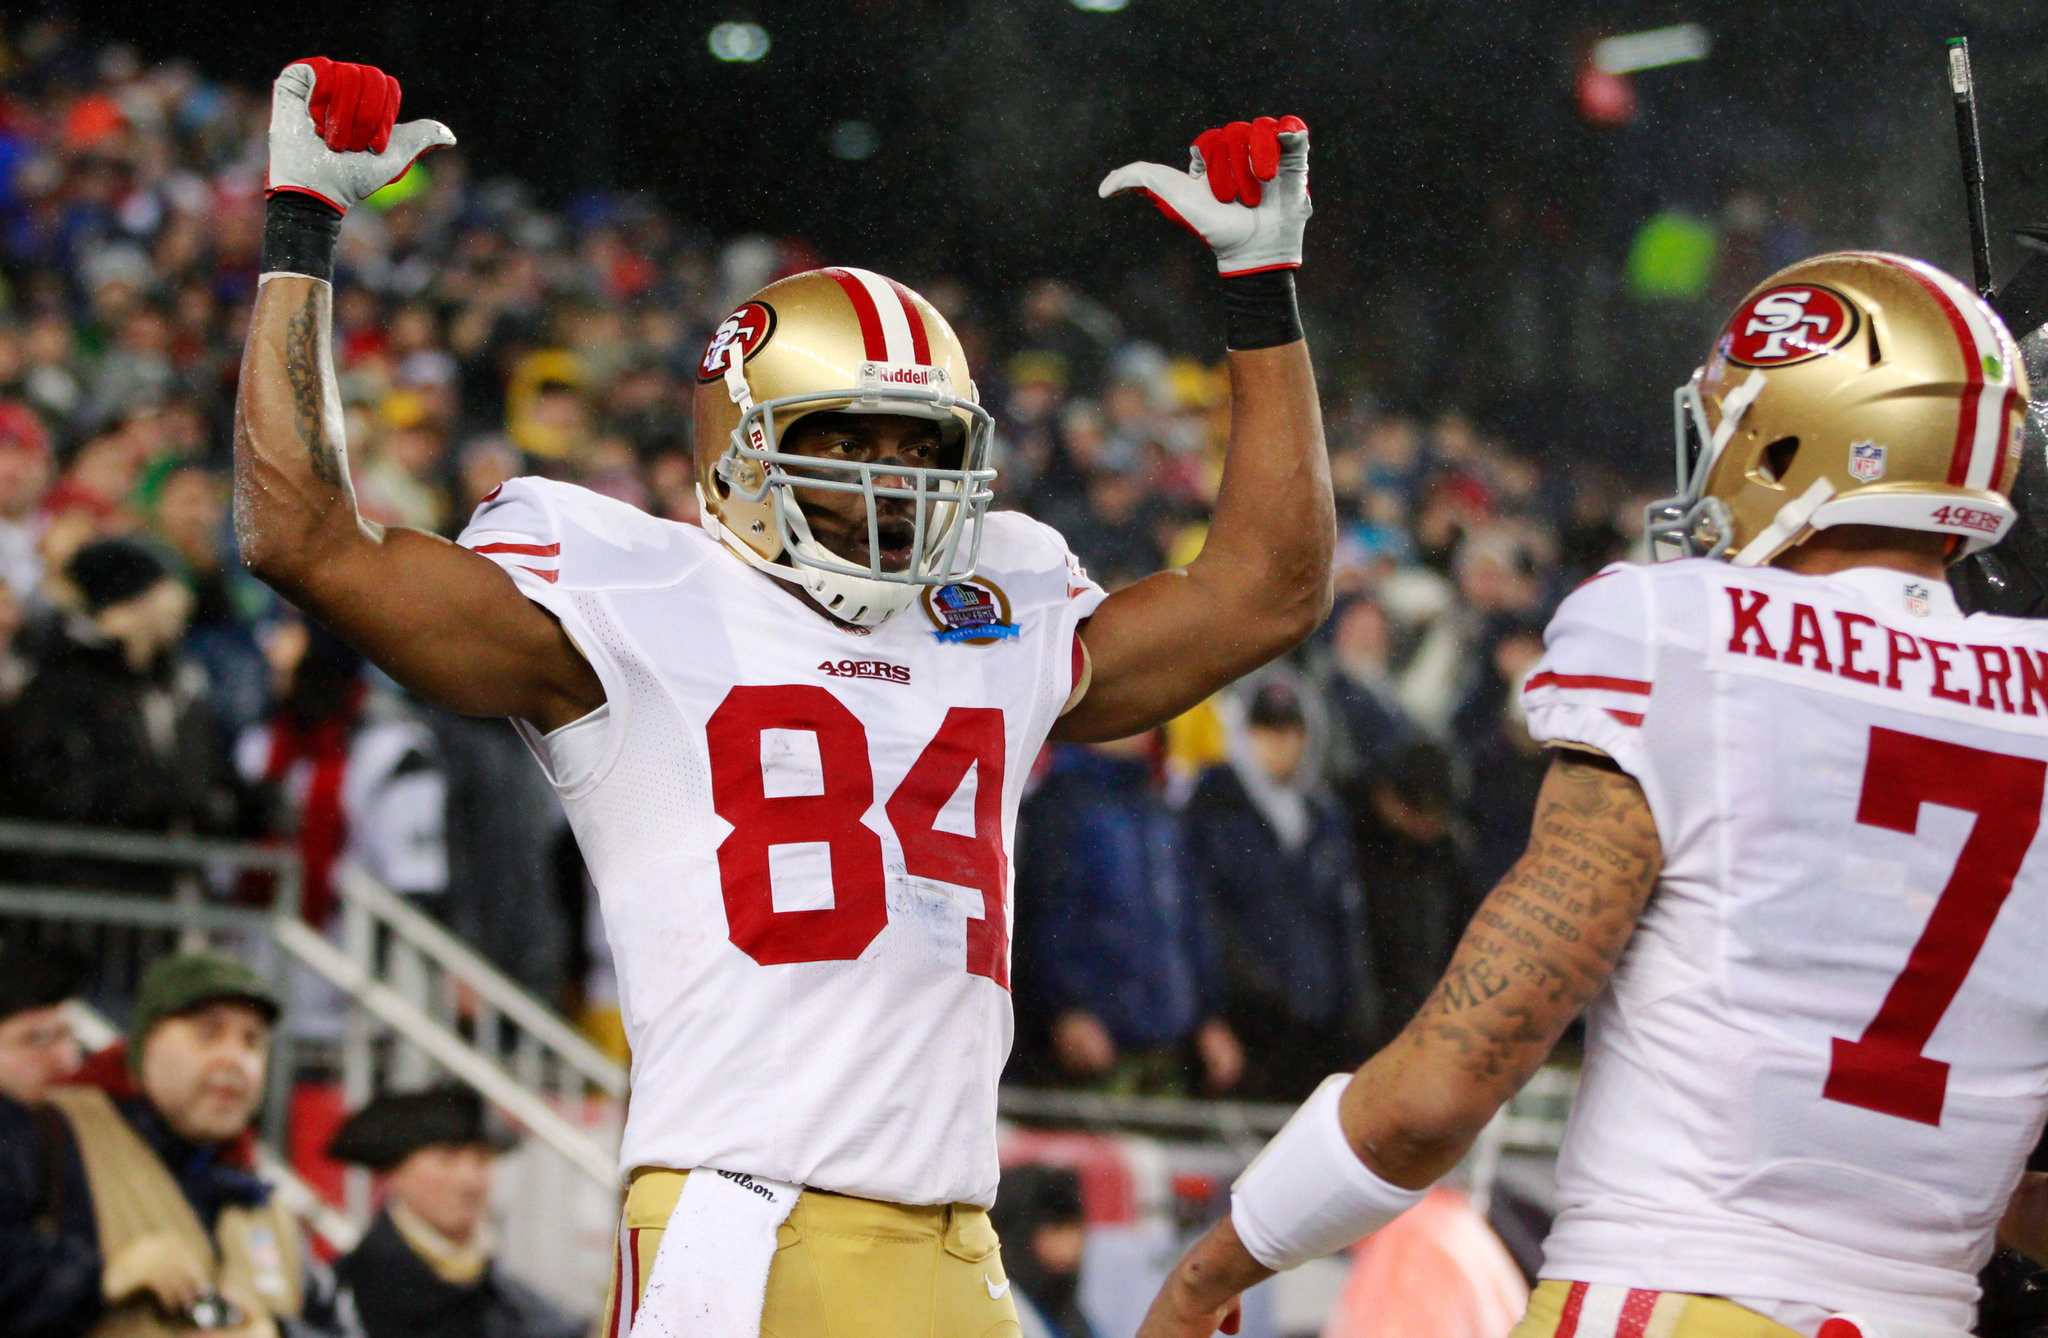 Res: 2048x1338, On 49ers, Randy Moss Reinvents Himself as Role Model ... Randy Moss 49ers